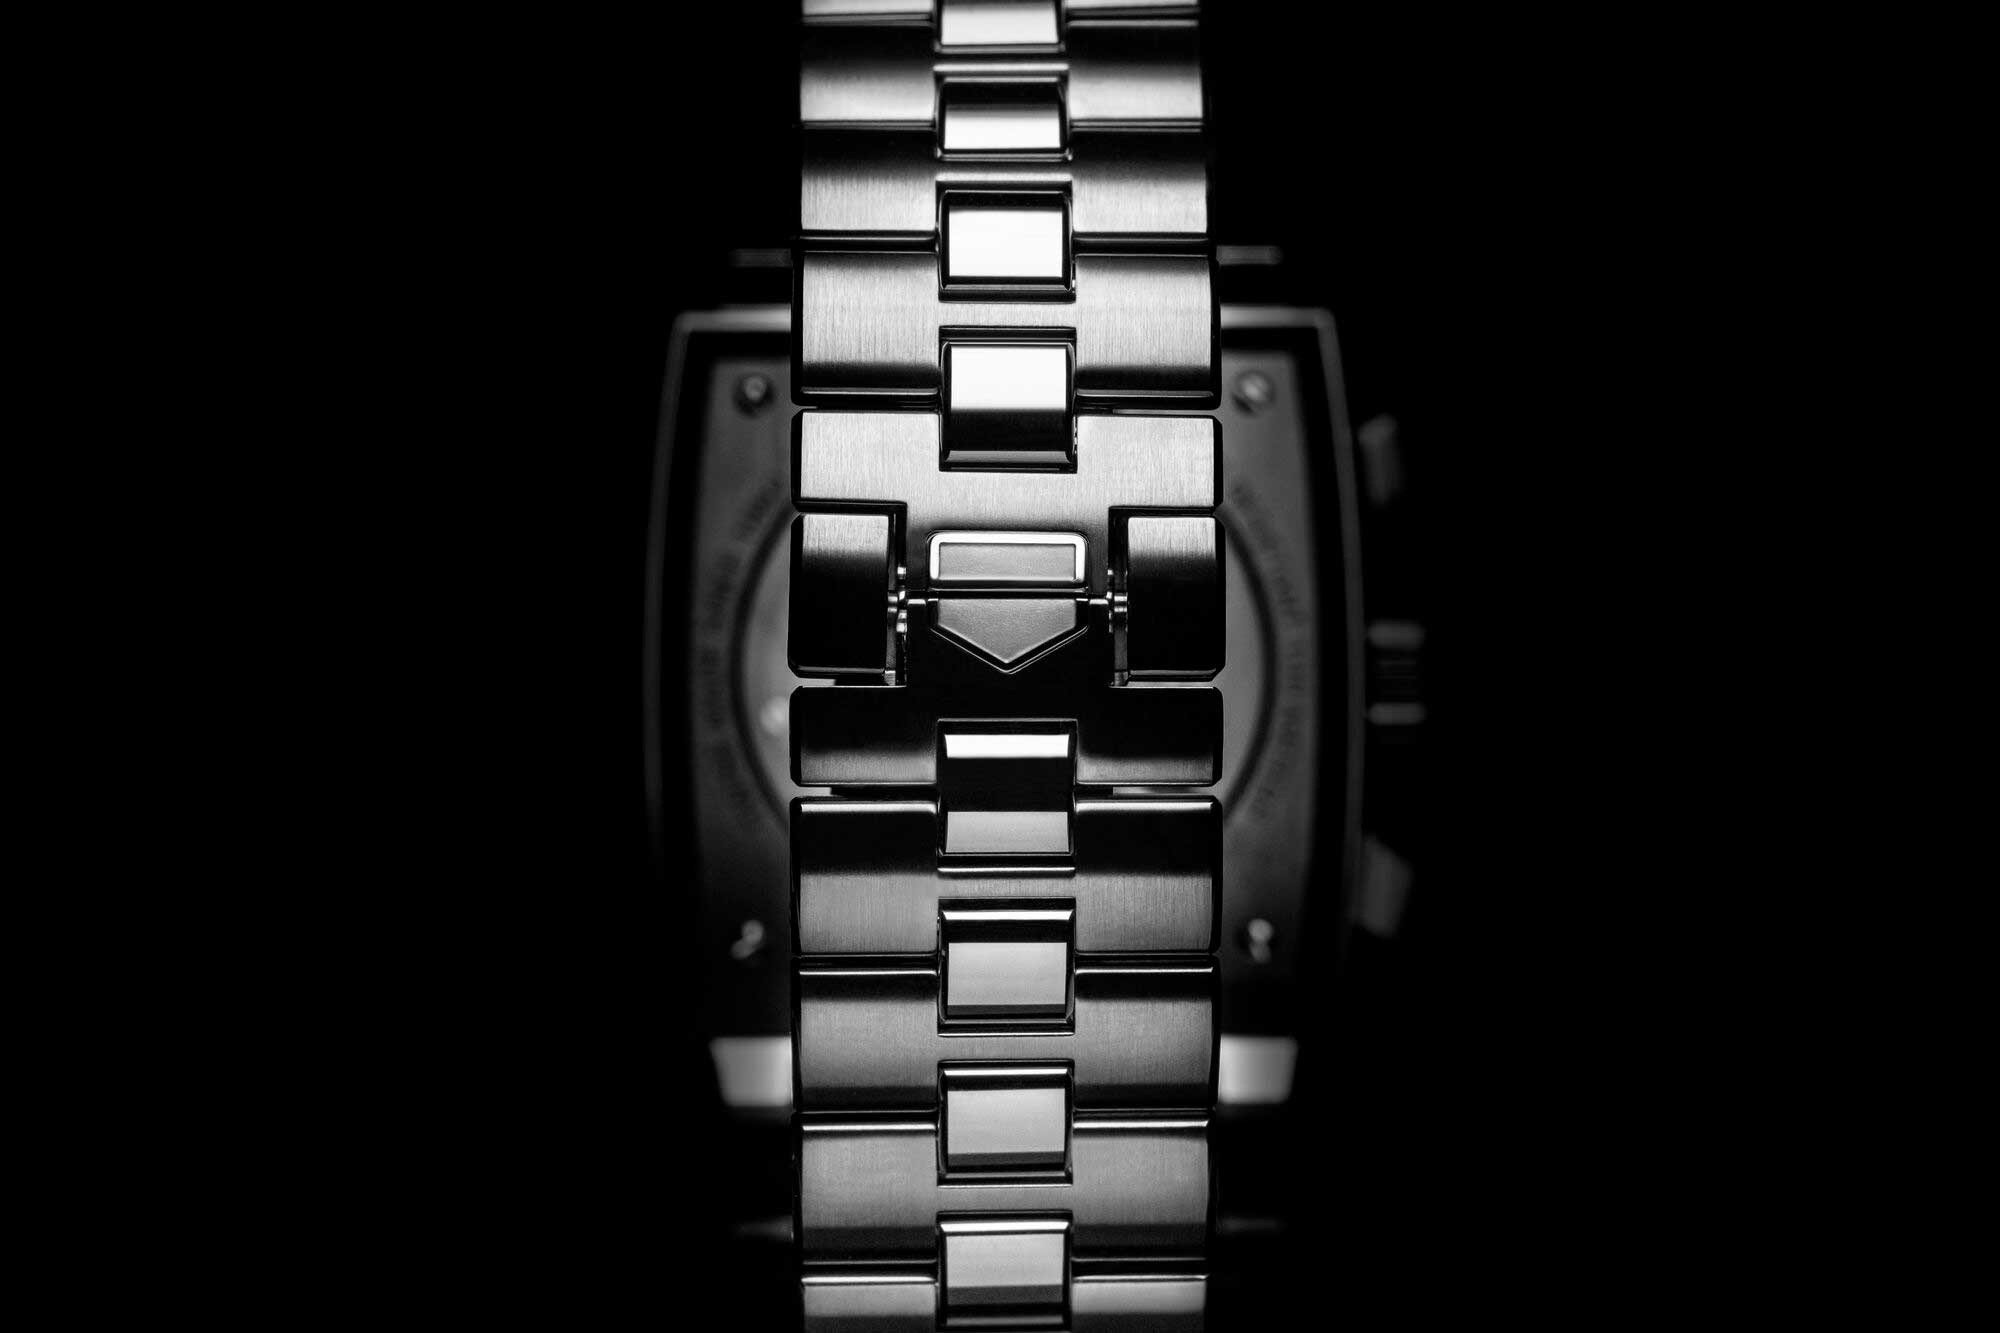 The bracelet for the TAG Heuer Monaco Chronograph 39mm Calibre Heuer 02 Automatic is one of its key new features